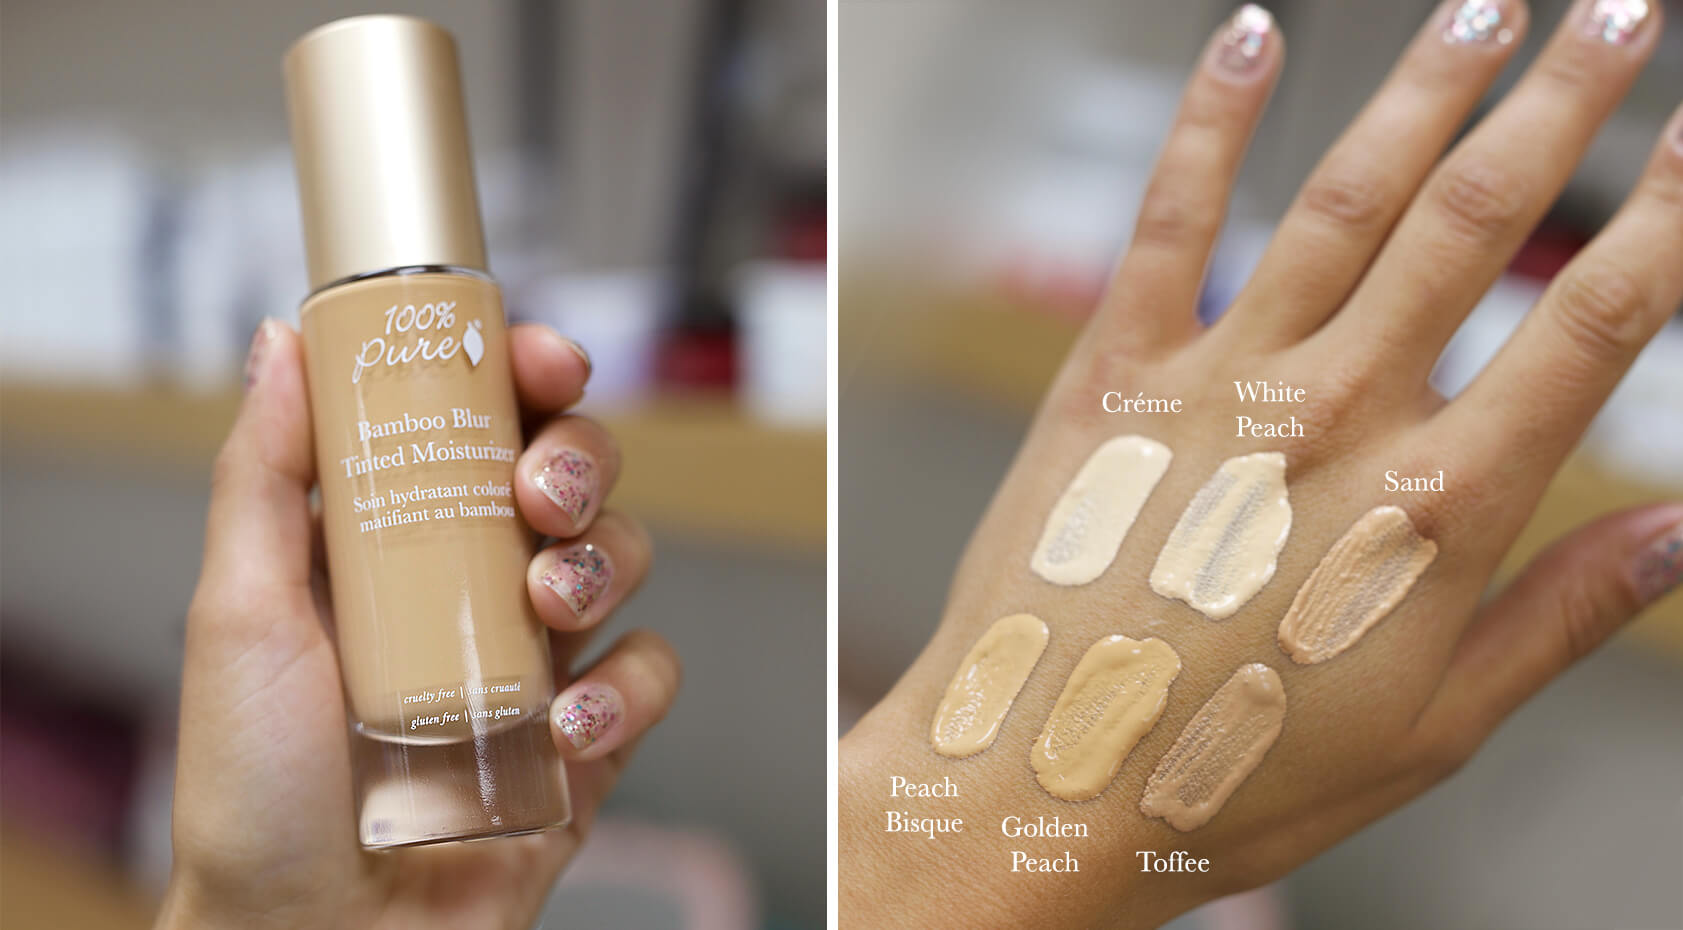 100% PURE Bamboo Blur Tinted Moisturizer hand swatch